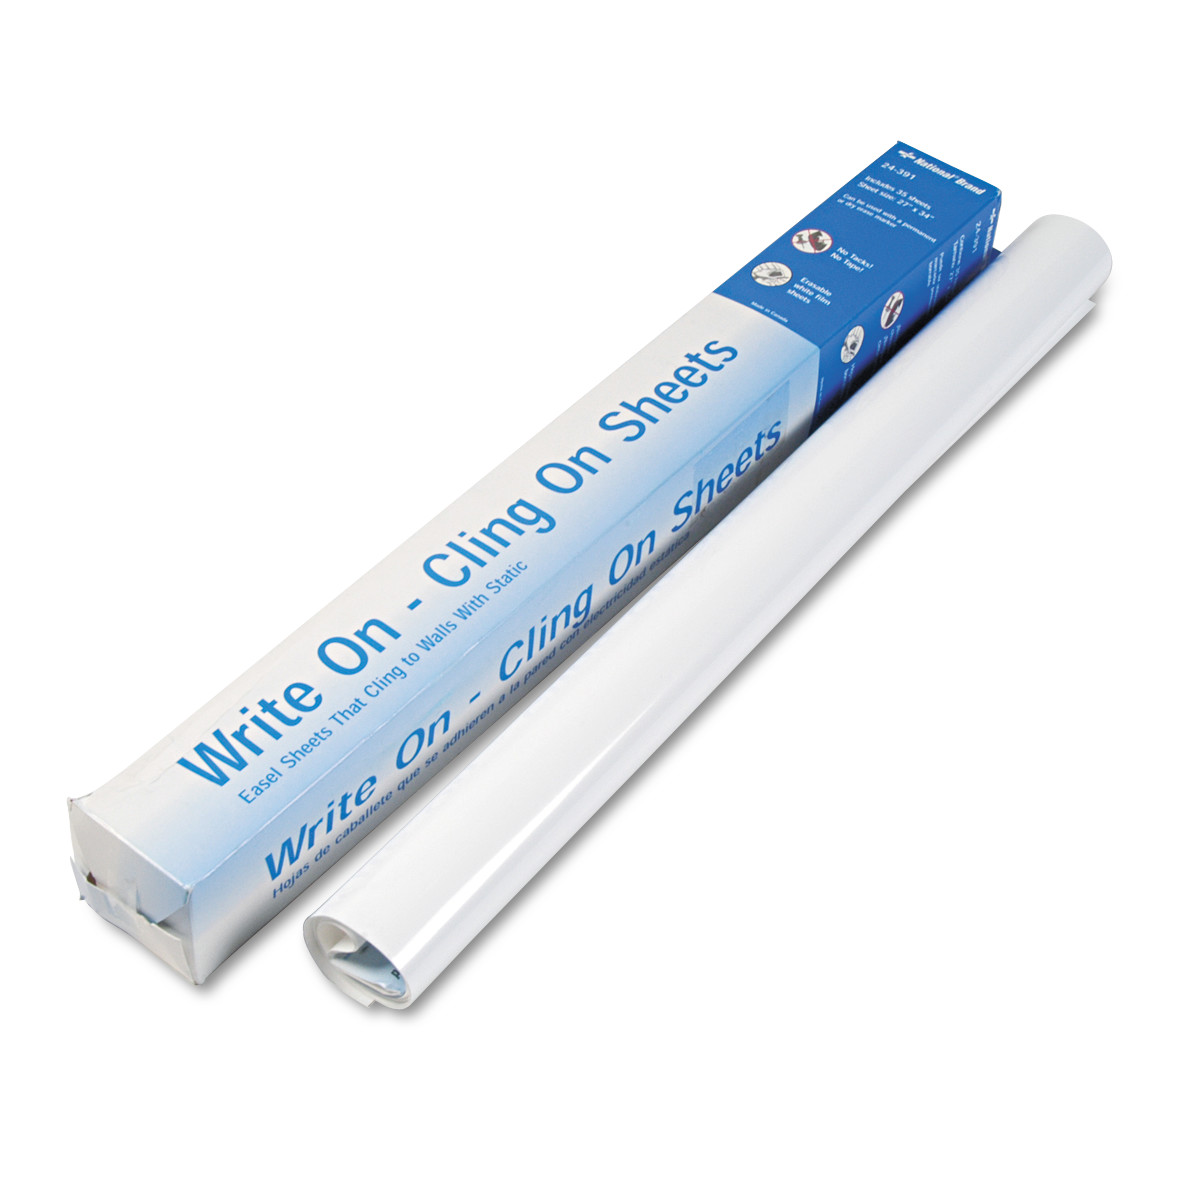 National Write On Cling On Easel Pad, Unruled, 27 x 34, White, 35 Sheets -RED24391